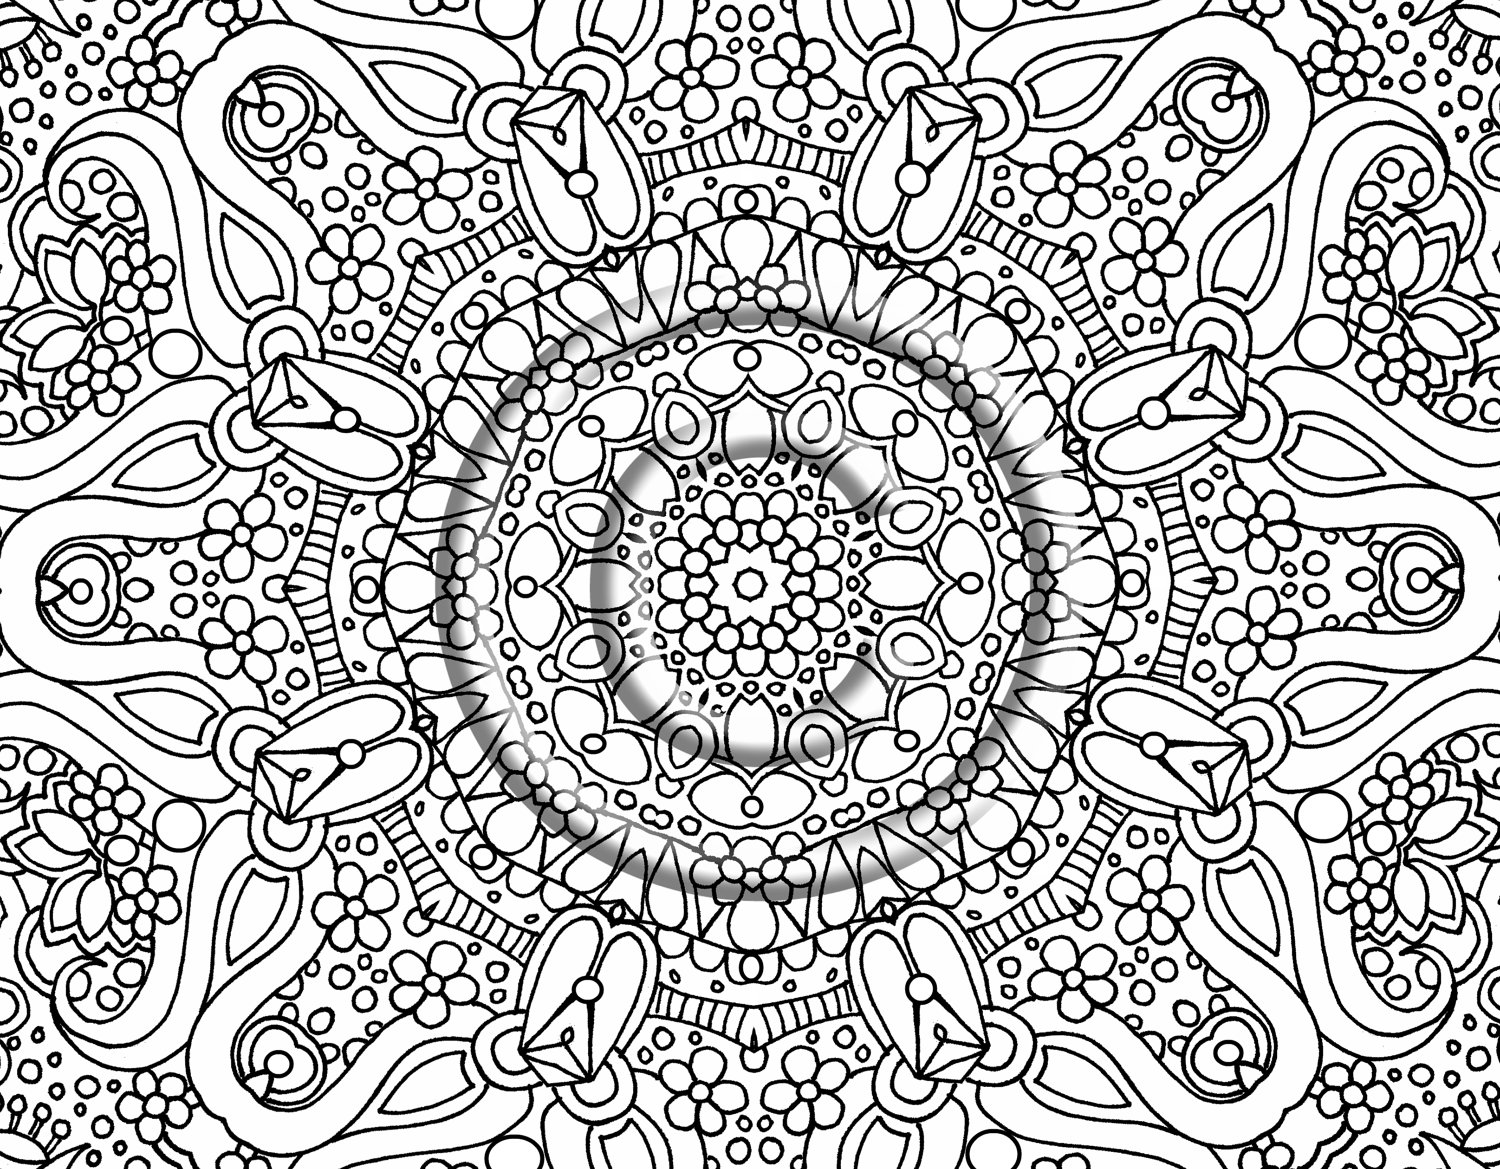 1500x1169 Detailed Coloring Pages For Adults Educational Coloring Pages